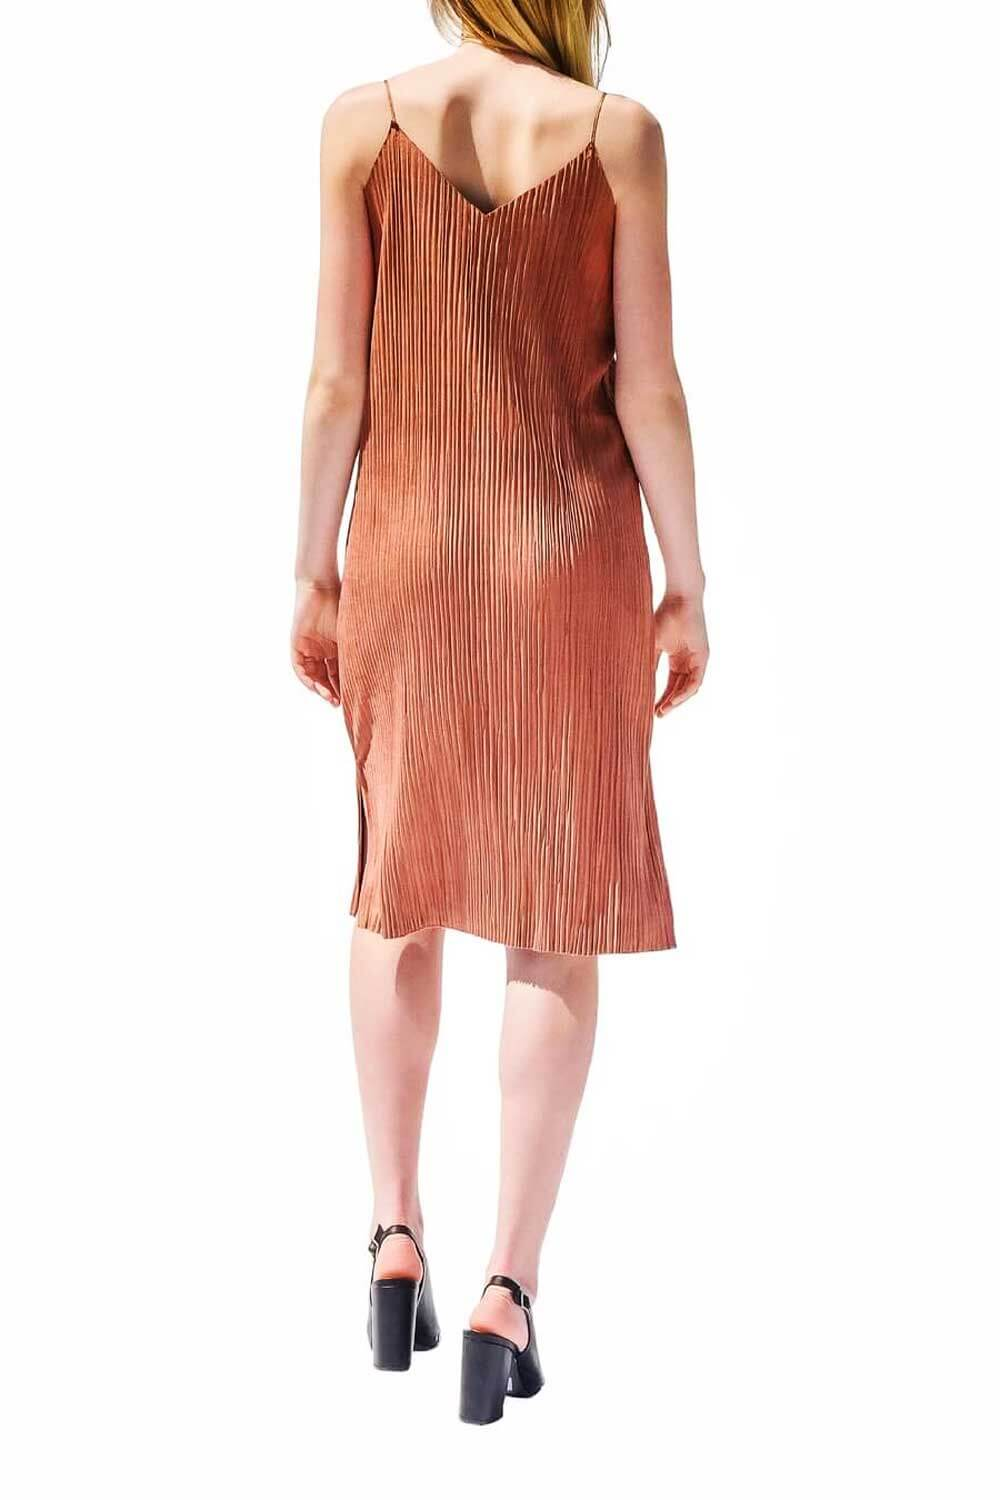 Isaac Pleated Dress Rust - MILK MONEY